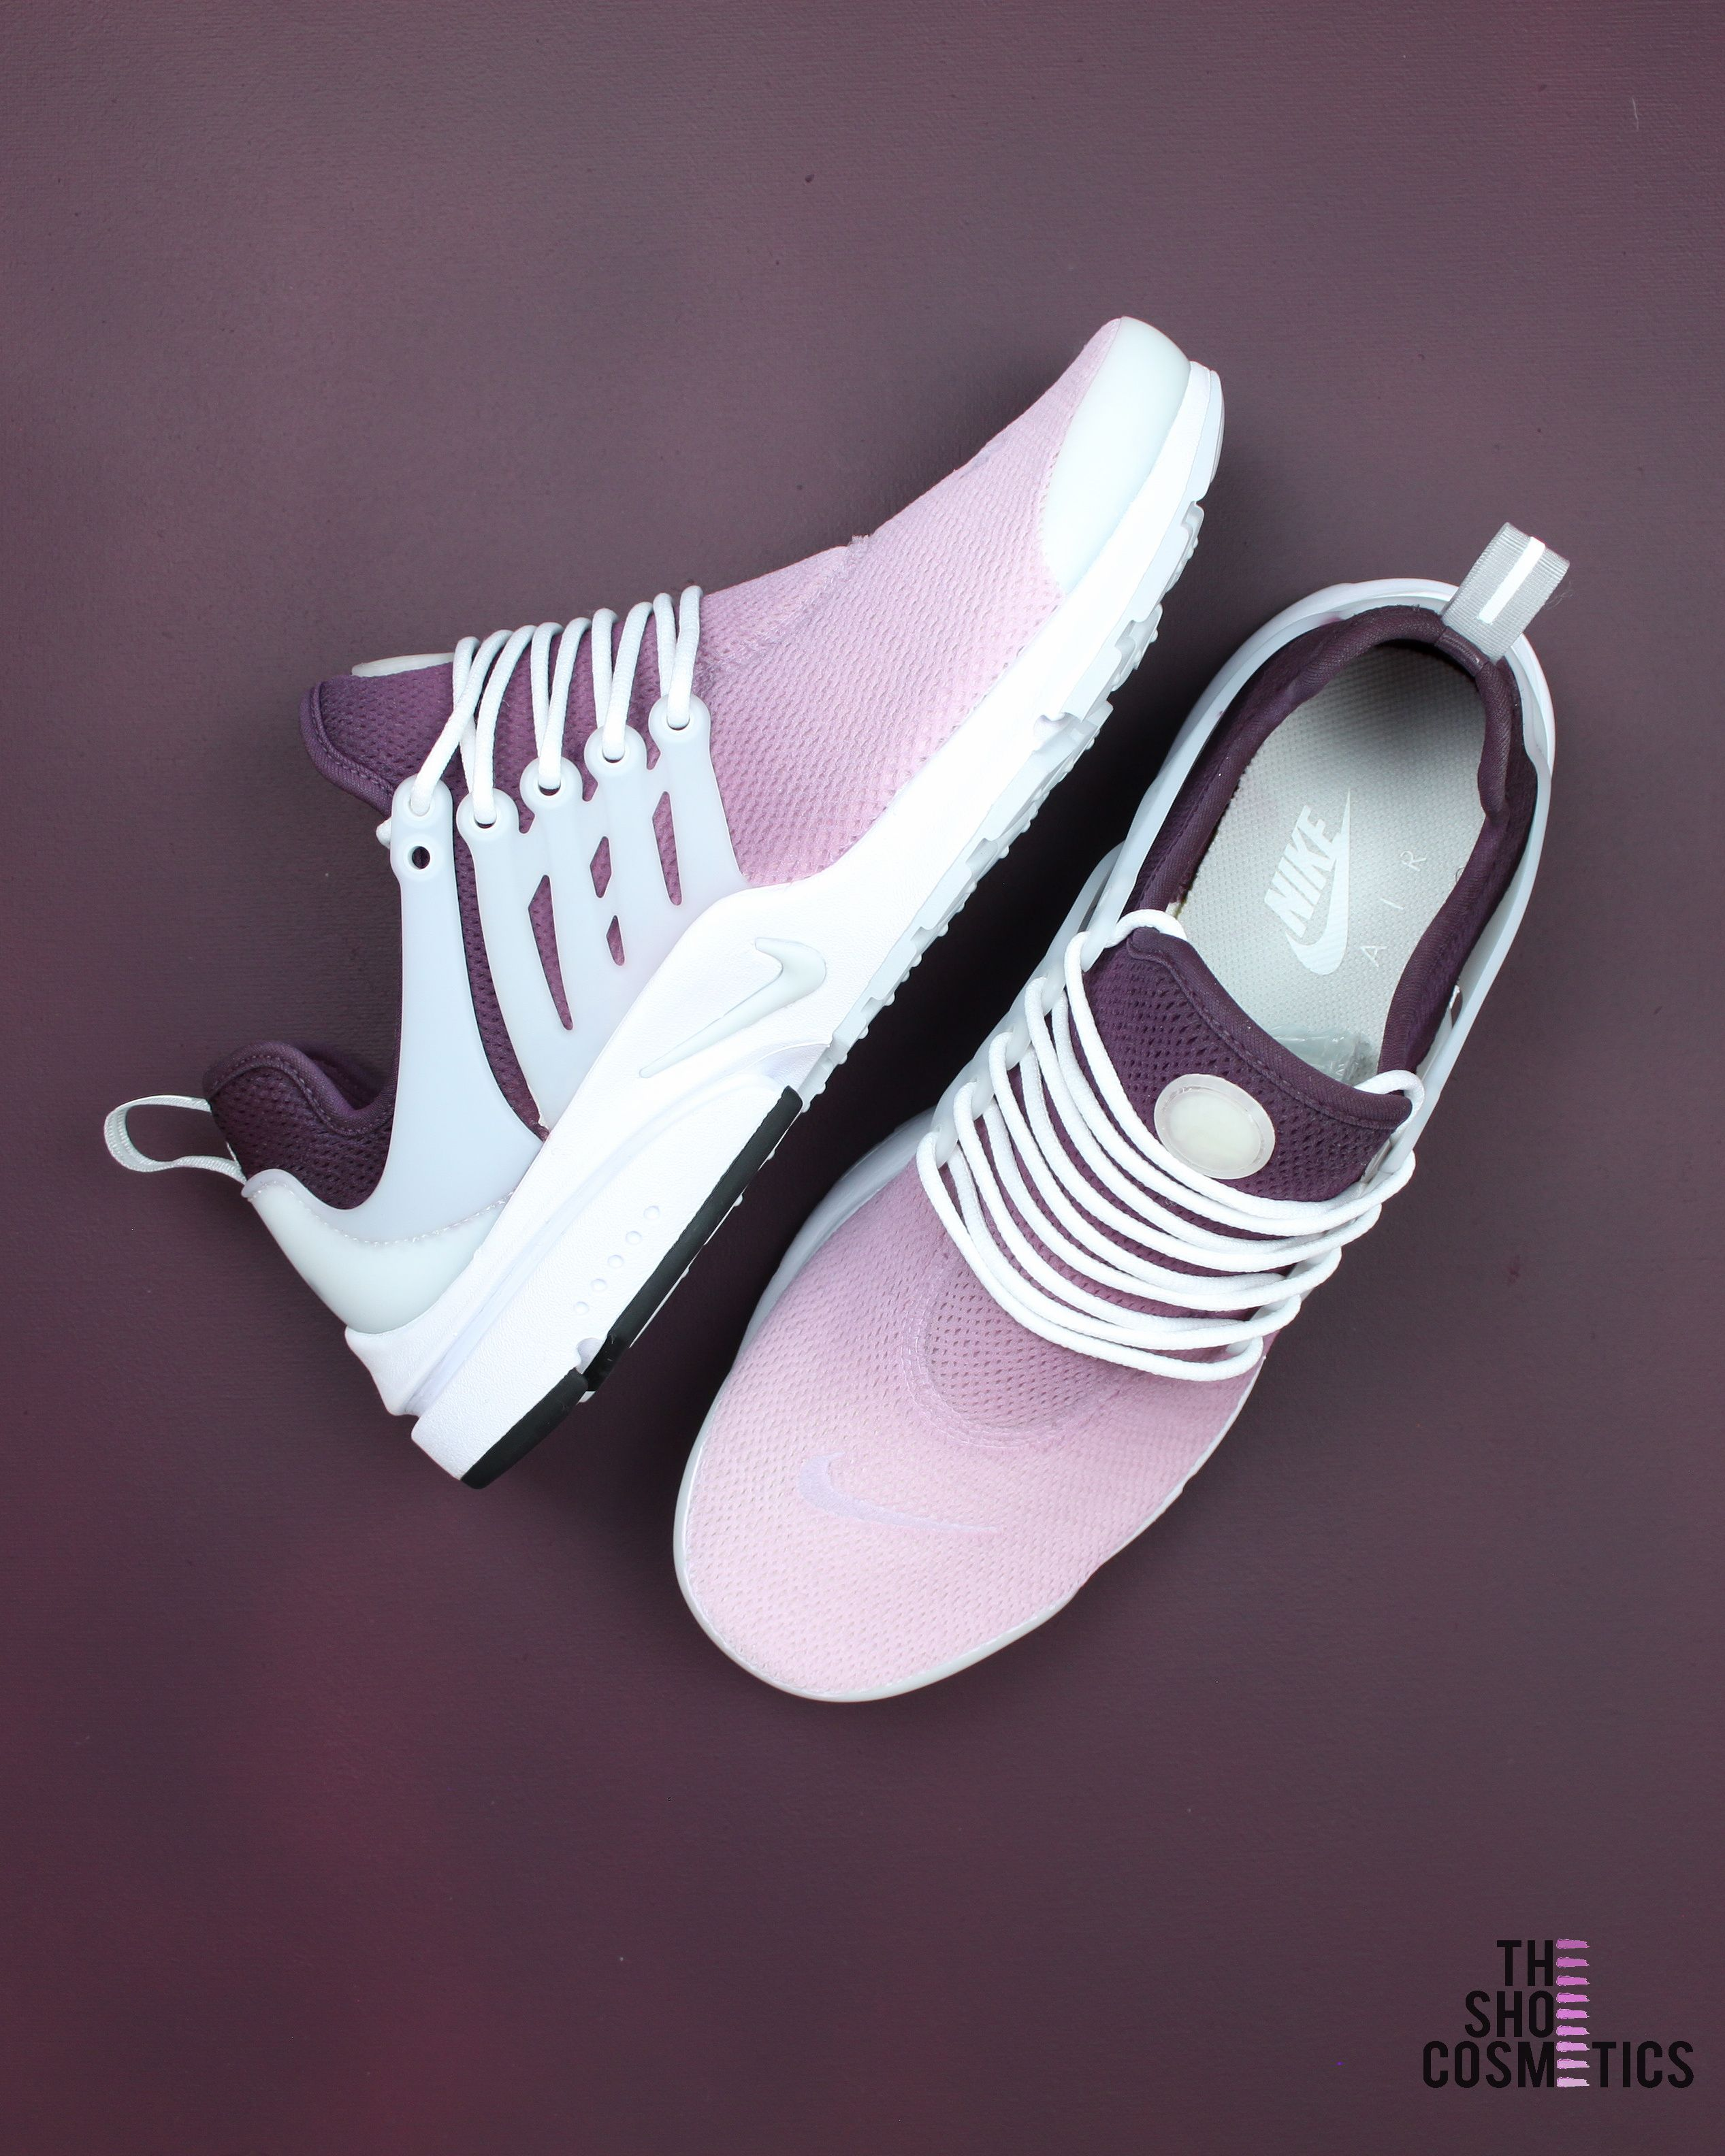 581c04ddb68847 If you love the Nike Air Presto then these Custom Nike shoes are perfect  for you.  customsneakers  customshoes  customkicks  presto  nikepresto